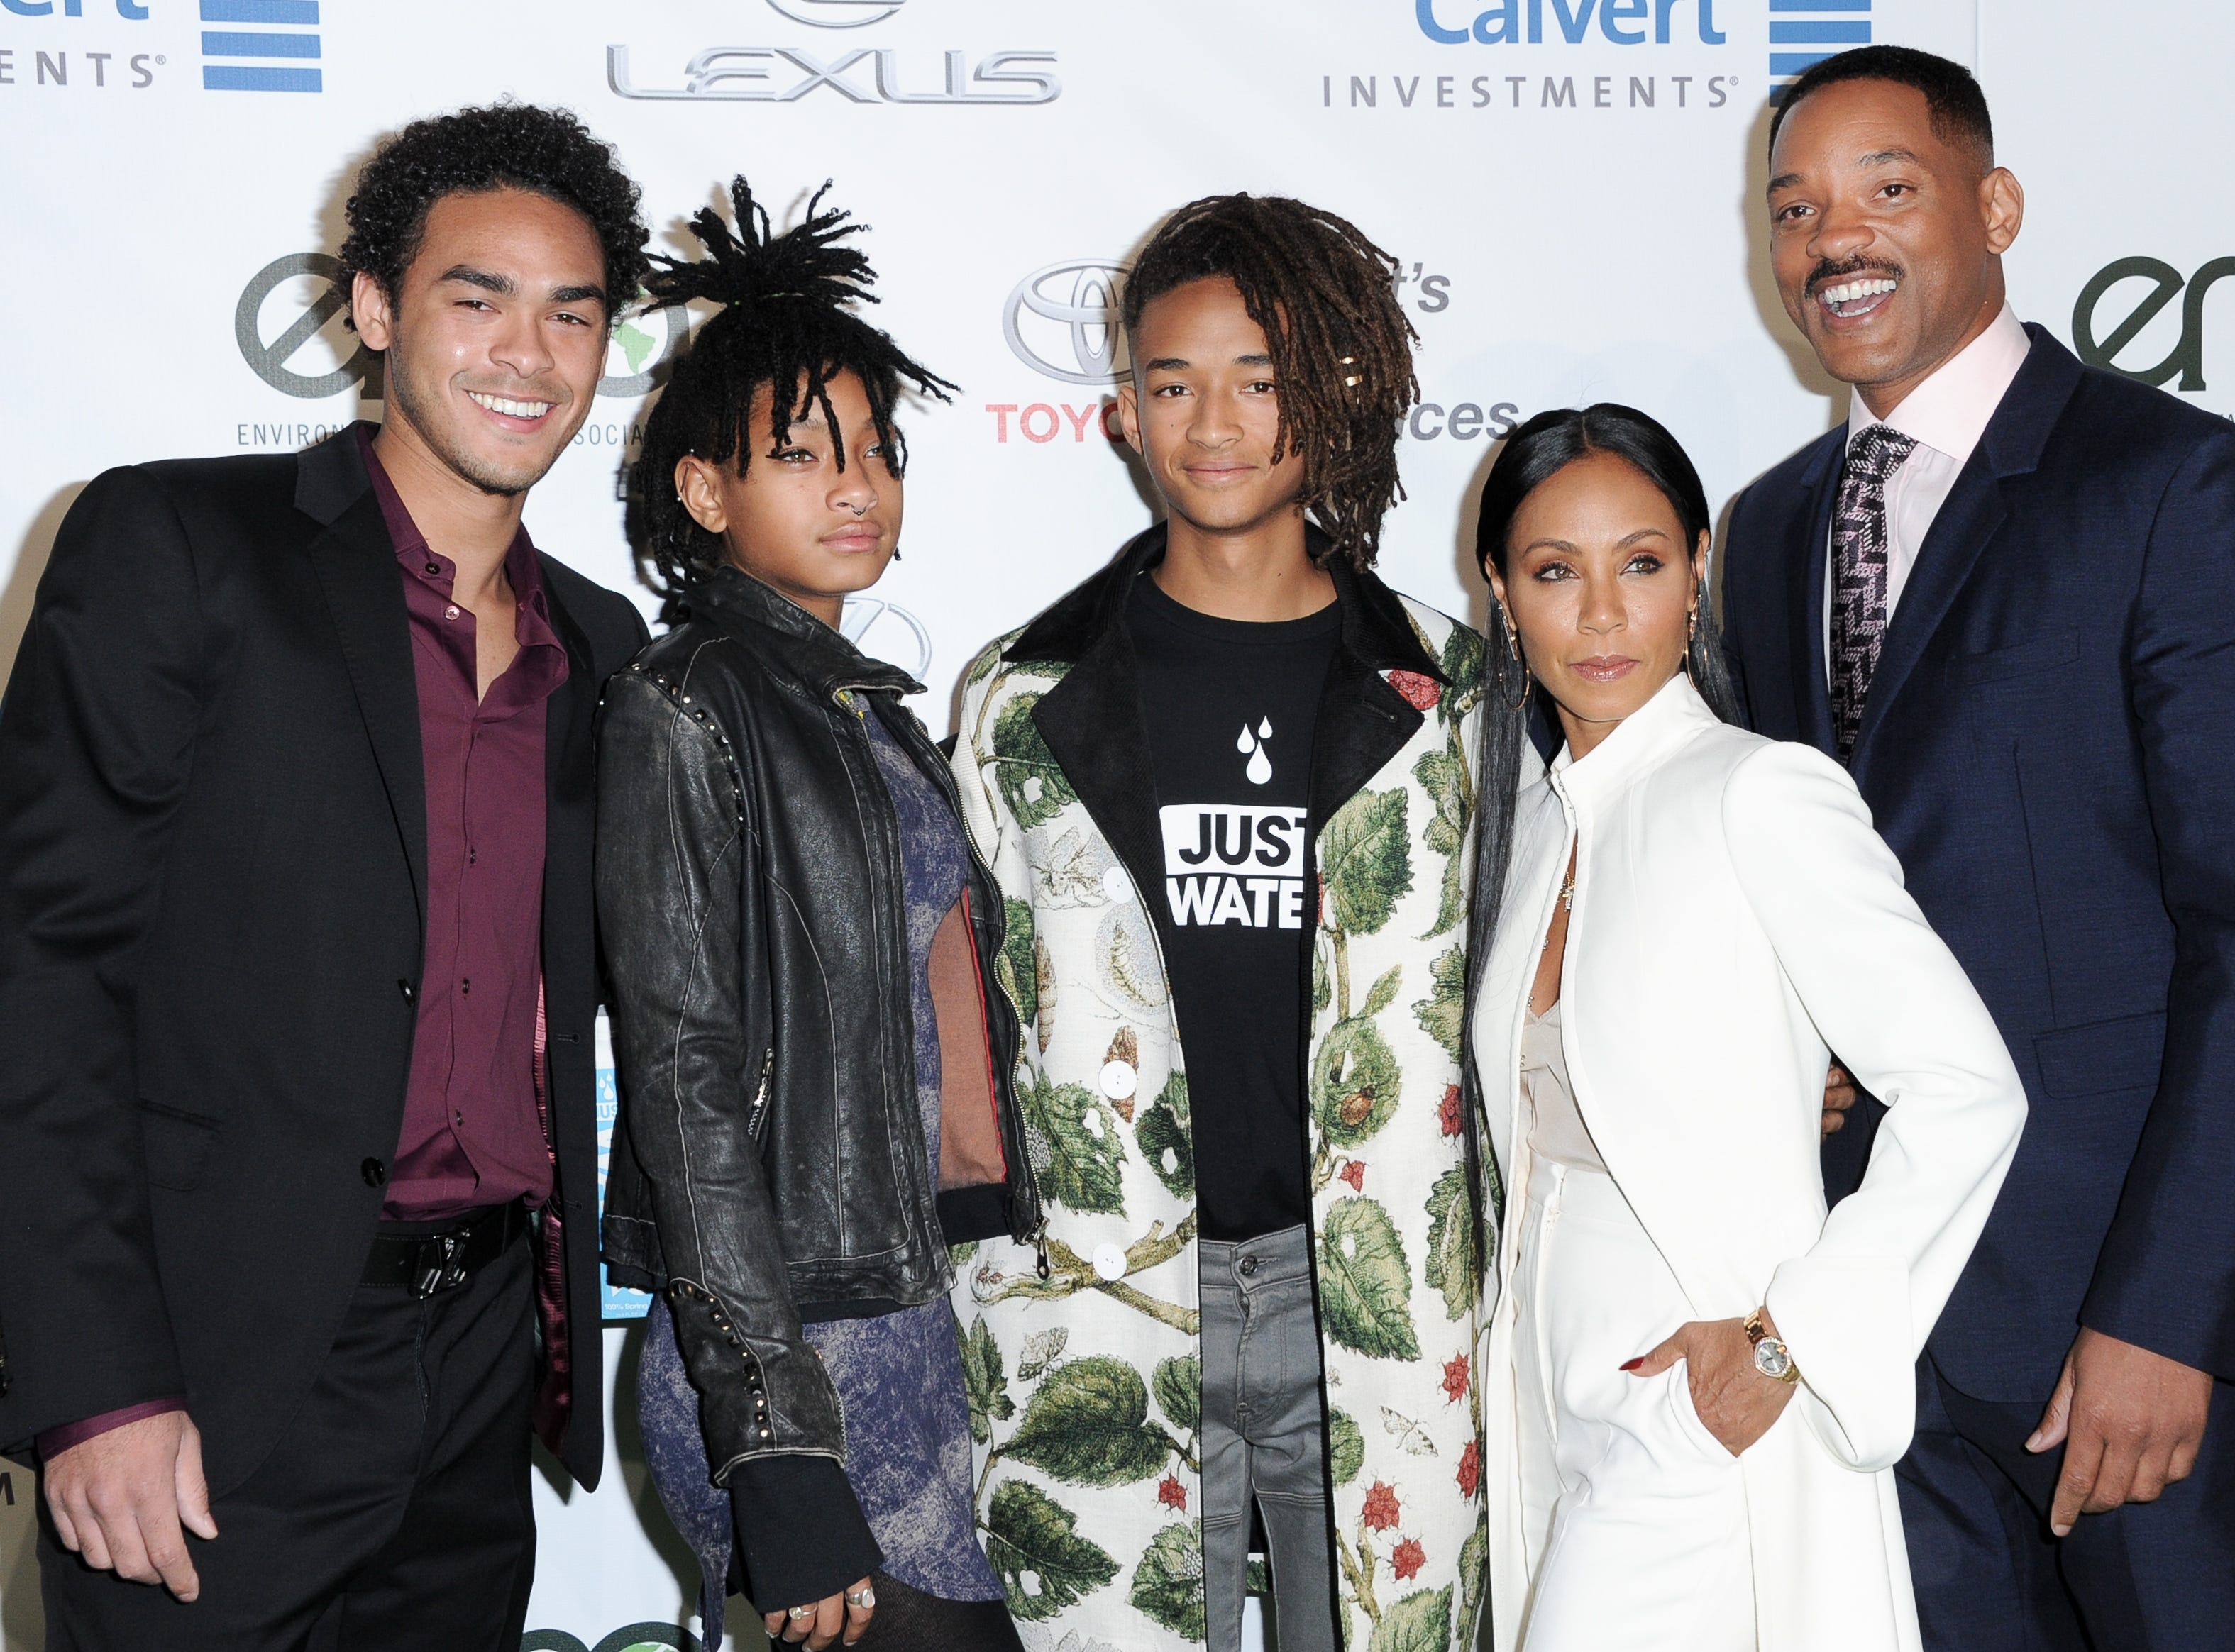 Trey Smith, from left, Willow Smith, Jaden Smith, Jada Pinkett Smith and Will Smith attend the 26th Annual EMA Awards at Warner Bros. Studio on Saturday, Oct. 22, 2016, in Burbank, Calif.